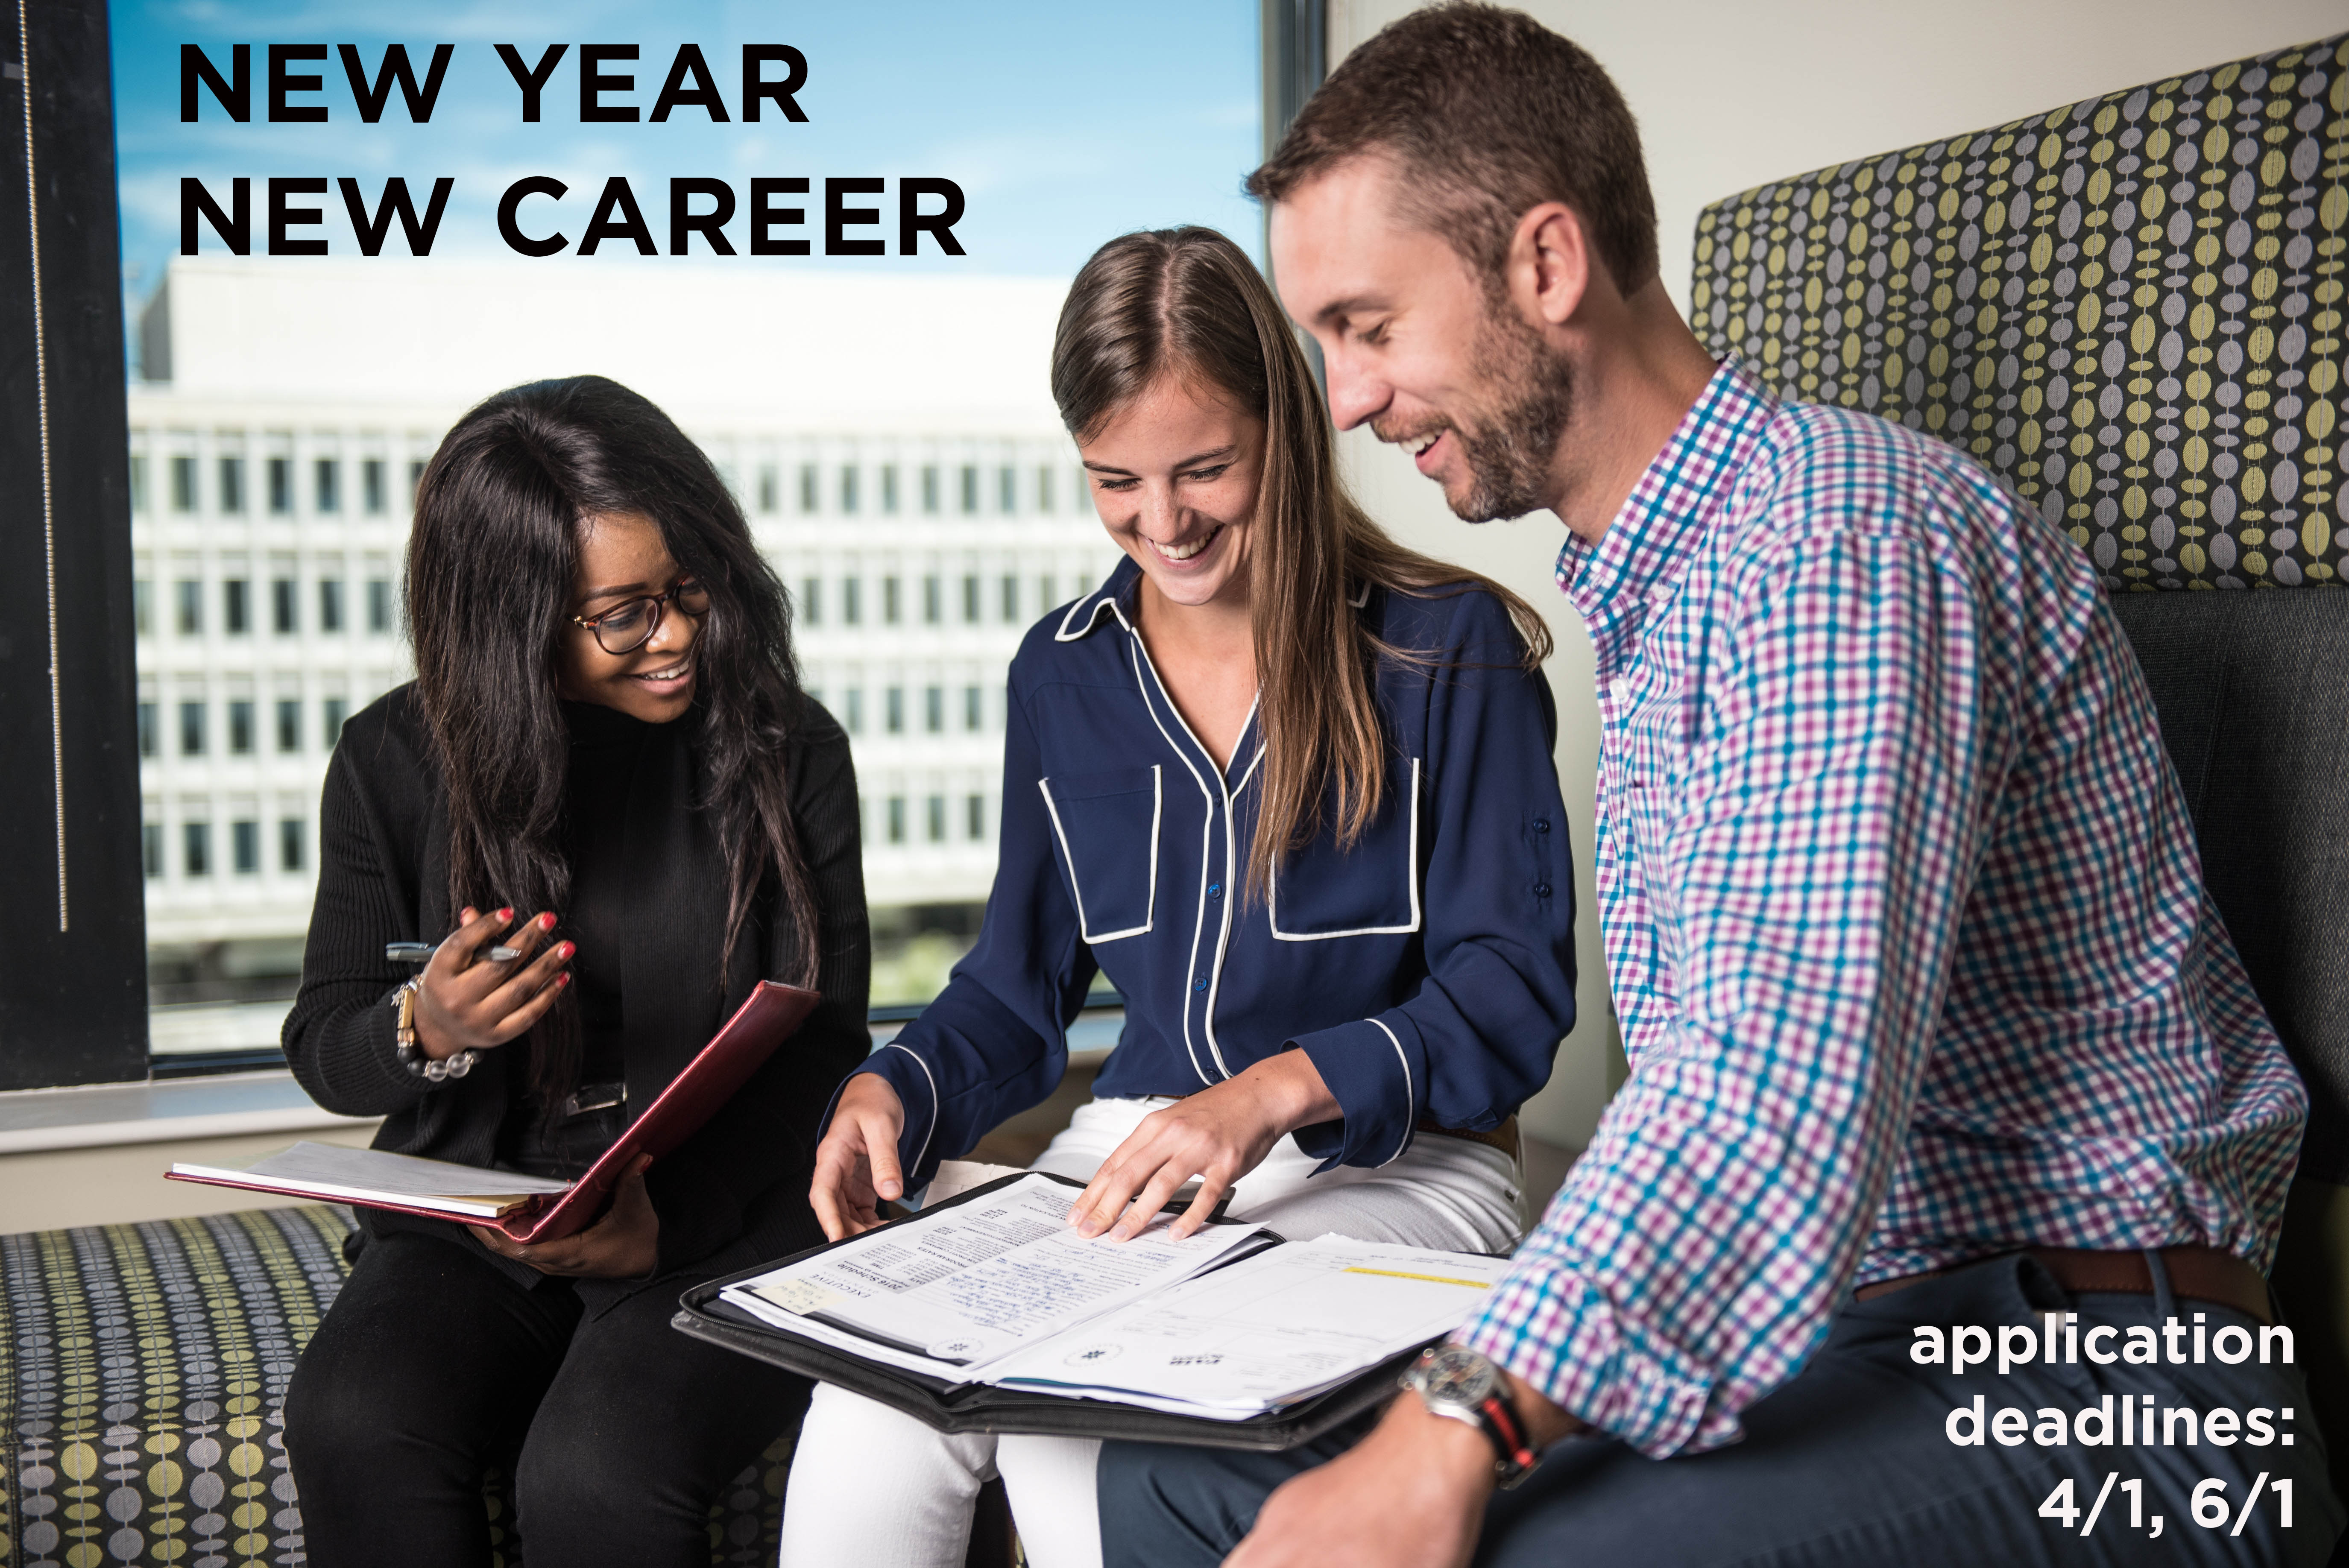 New Year, New Career, Apply Now